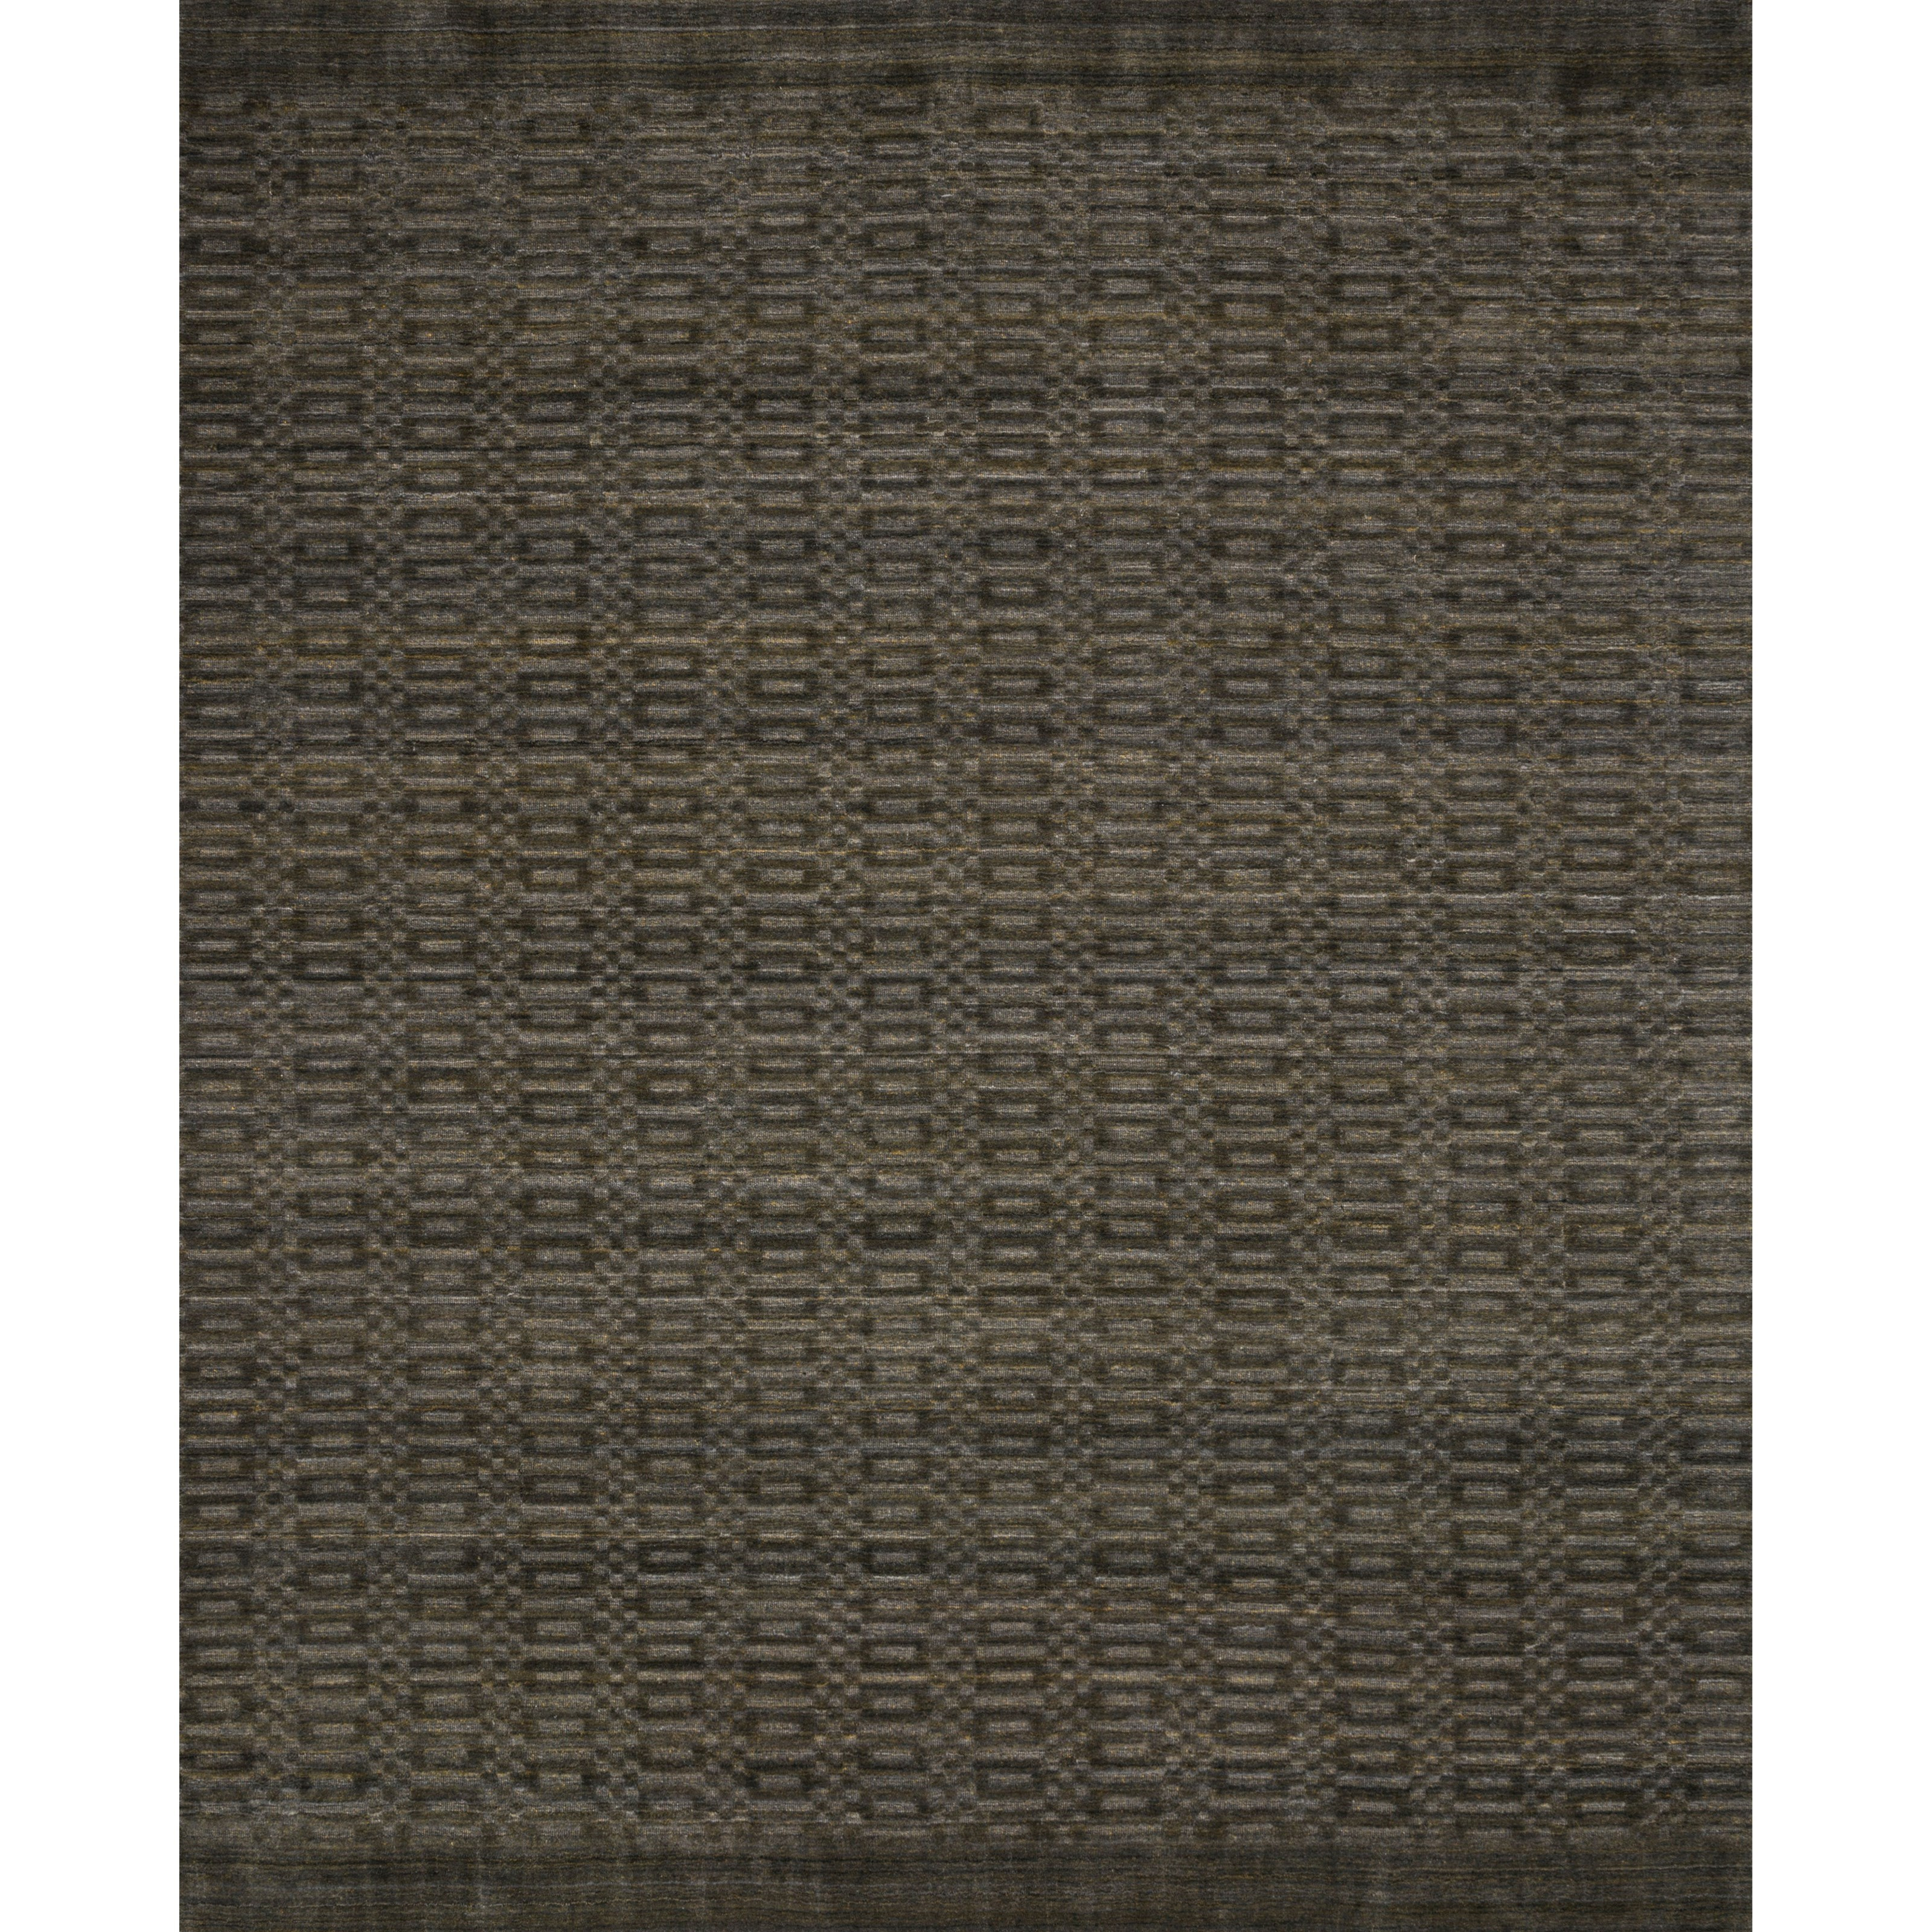 "Lennon 2'0"" x 3'0"" Tobacco Rug by Loloi Rugs at Sprintz Furniture"